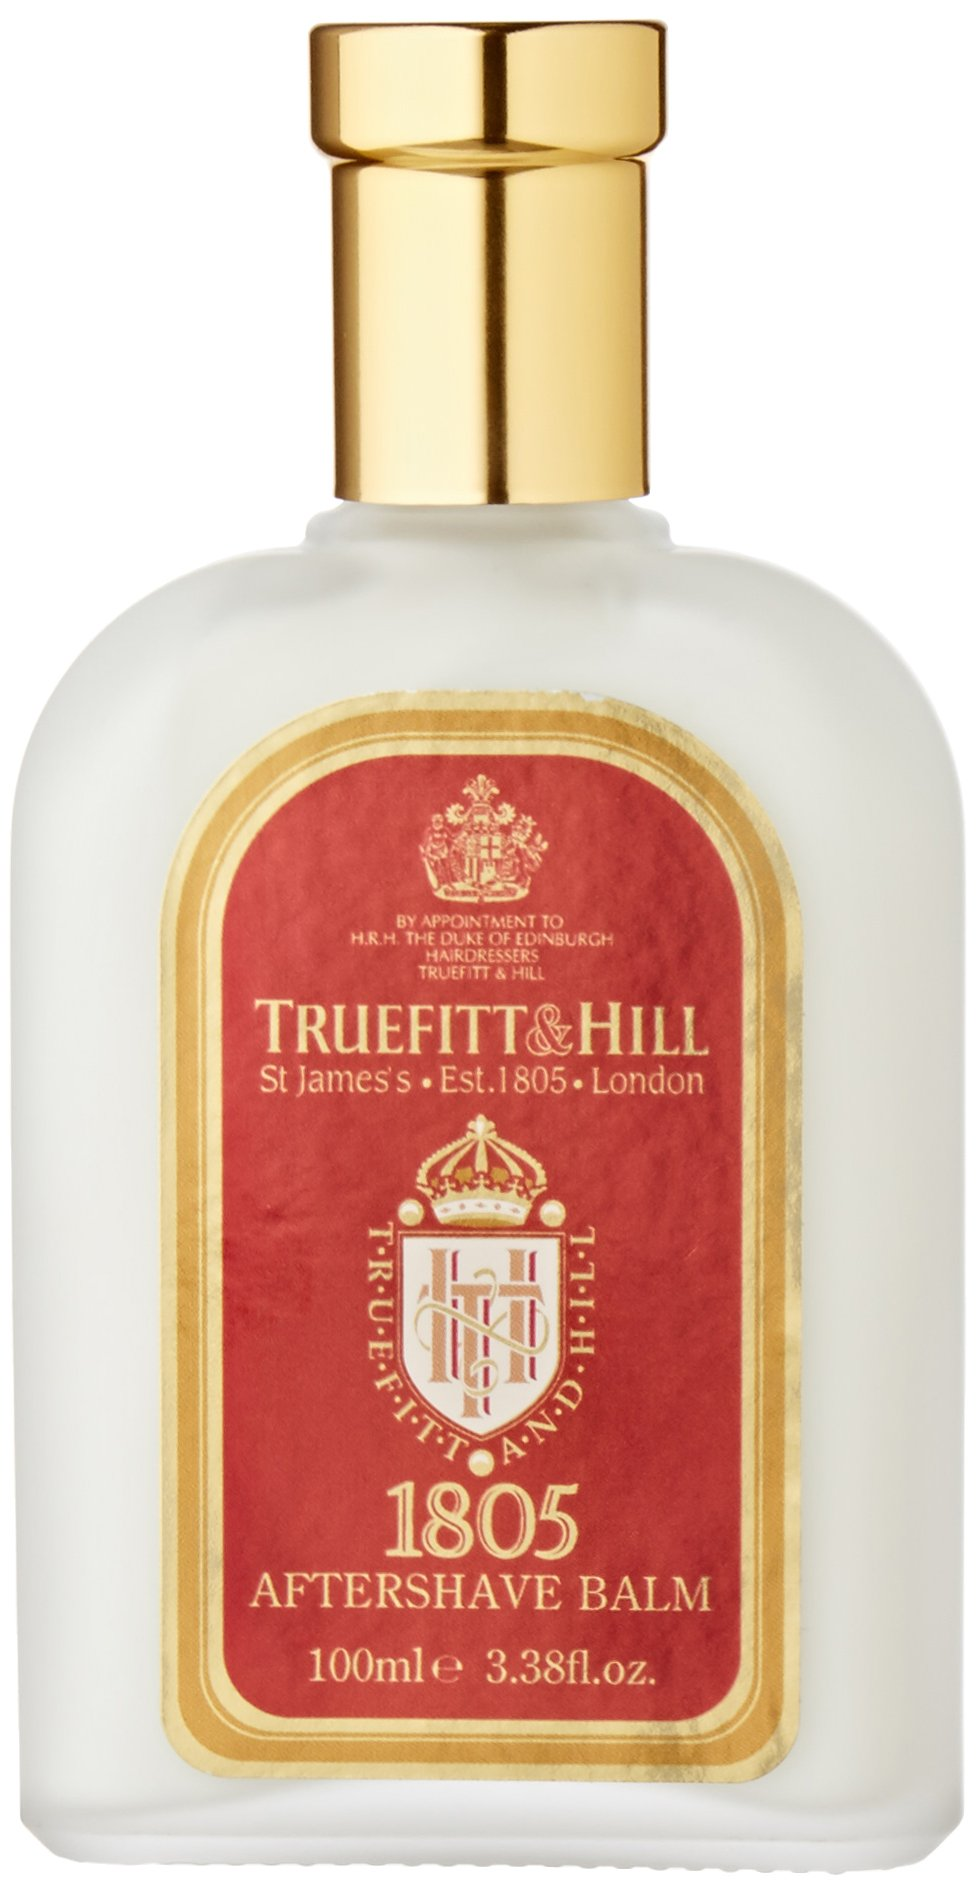 Truefitt & Hill 1805 Aftershave Balm, 3.38 fl.oz(100ml)